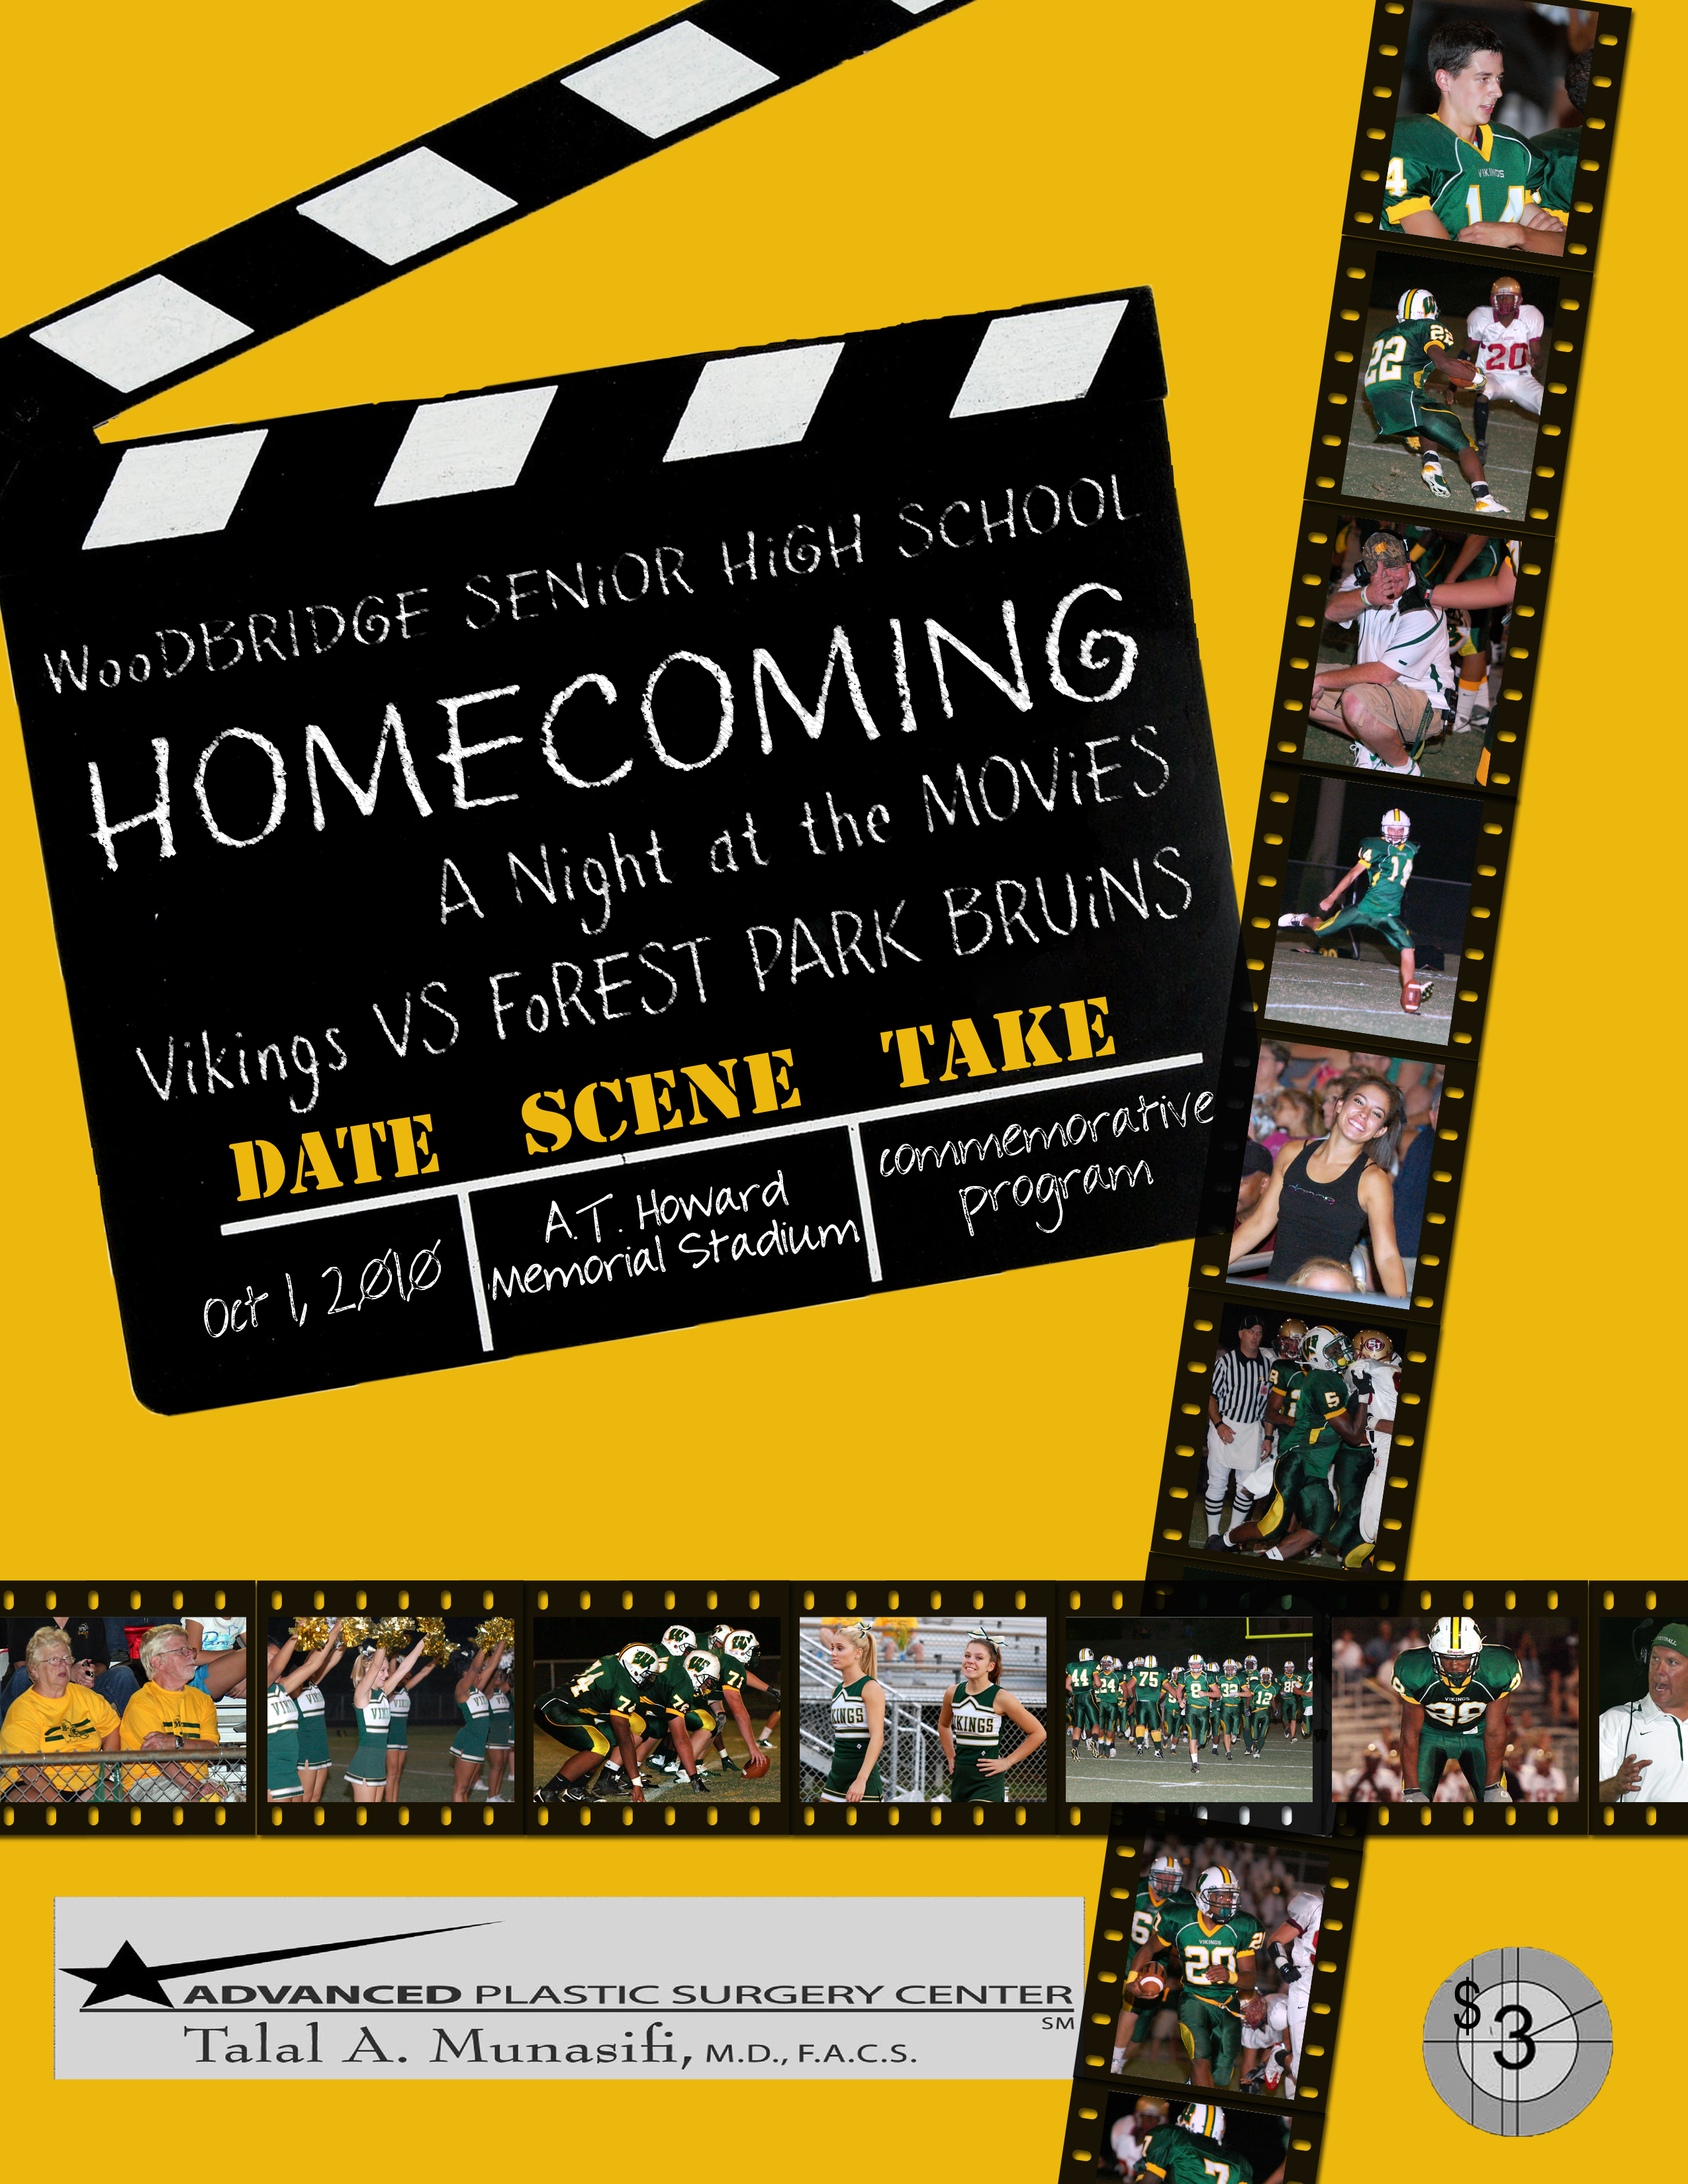 Campaign Slogans for Homecoming Court